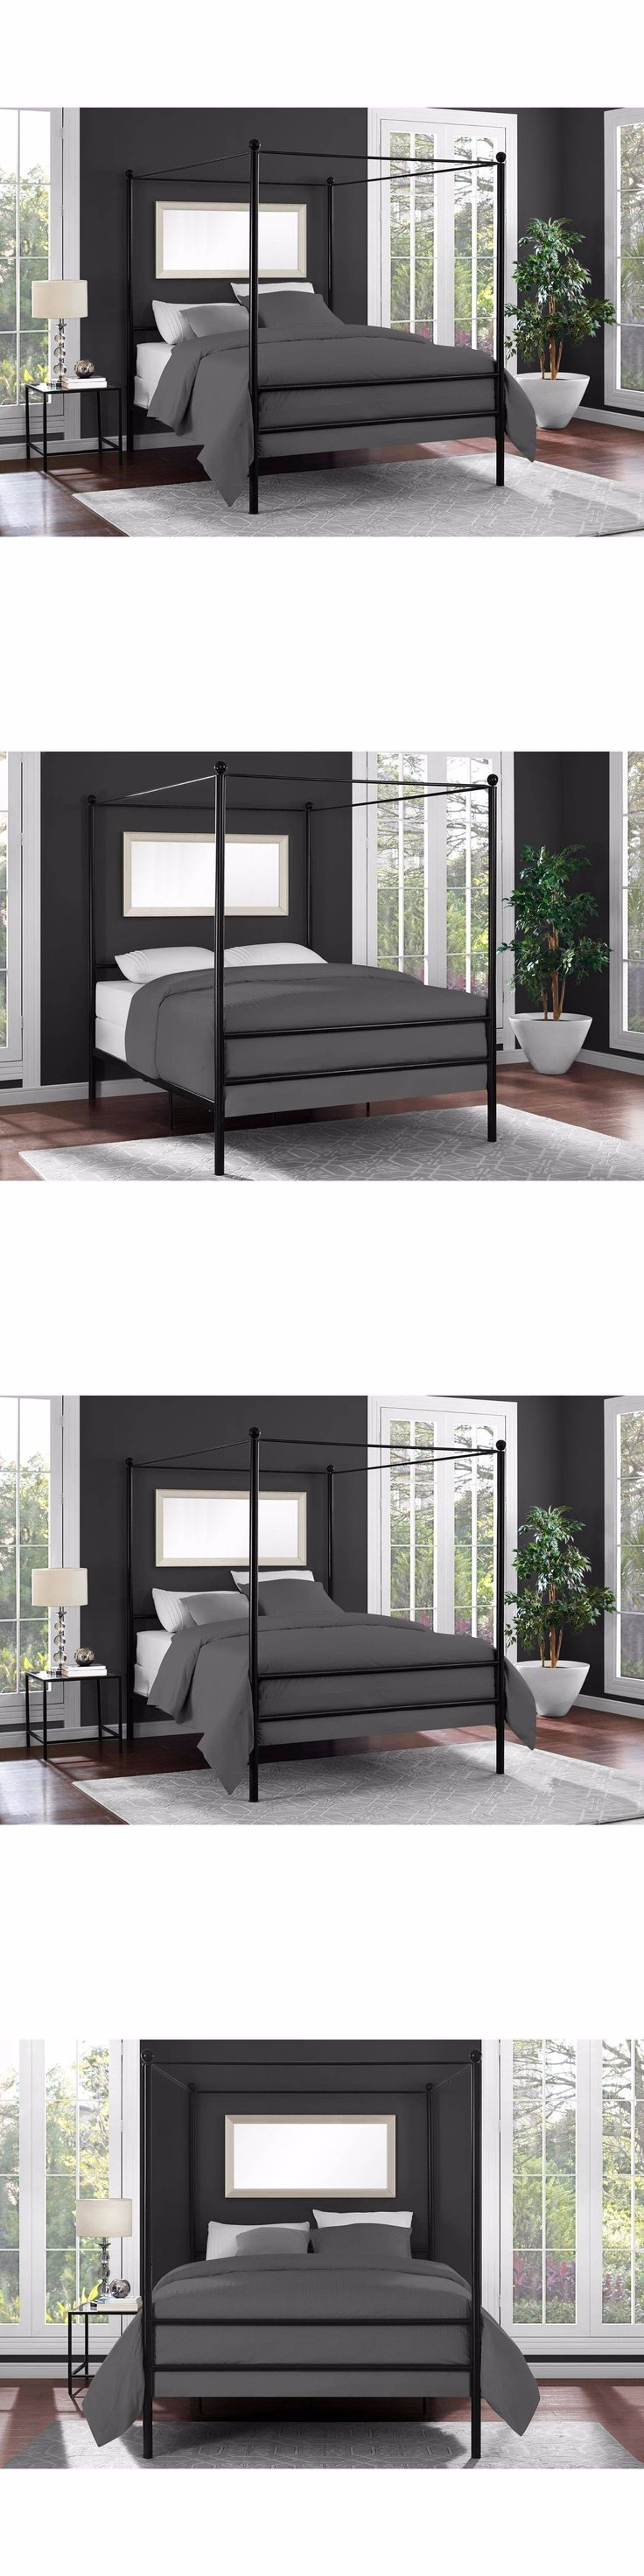 Napa queen size black canopy bed free shipping today overstock com - Beds And Bed Frames 175758 Metal Canopy Platform Bed Frame Headboard Bedroom Furniture Modern Full